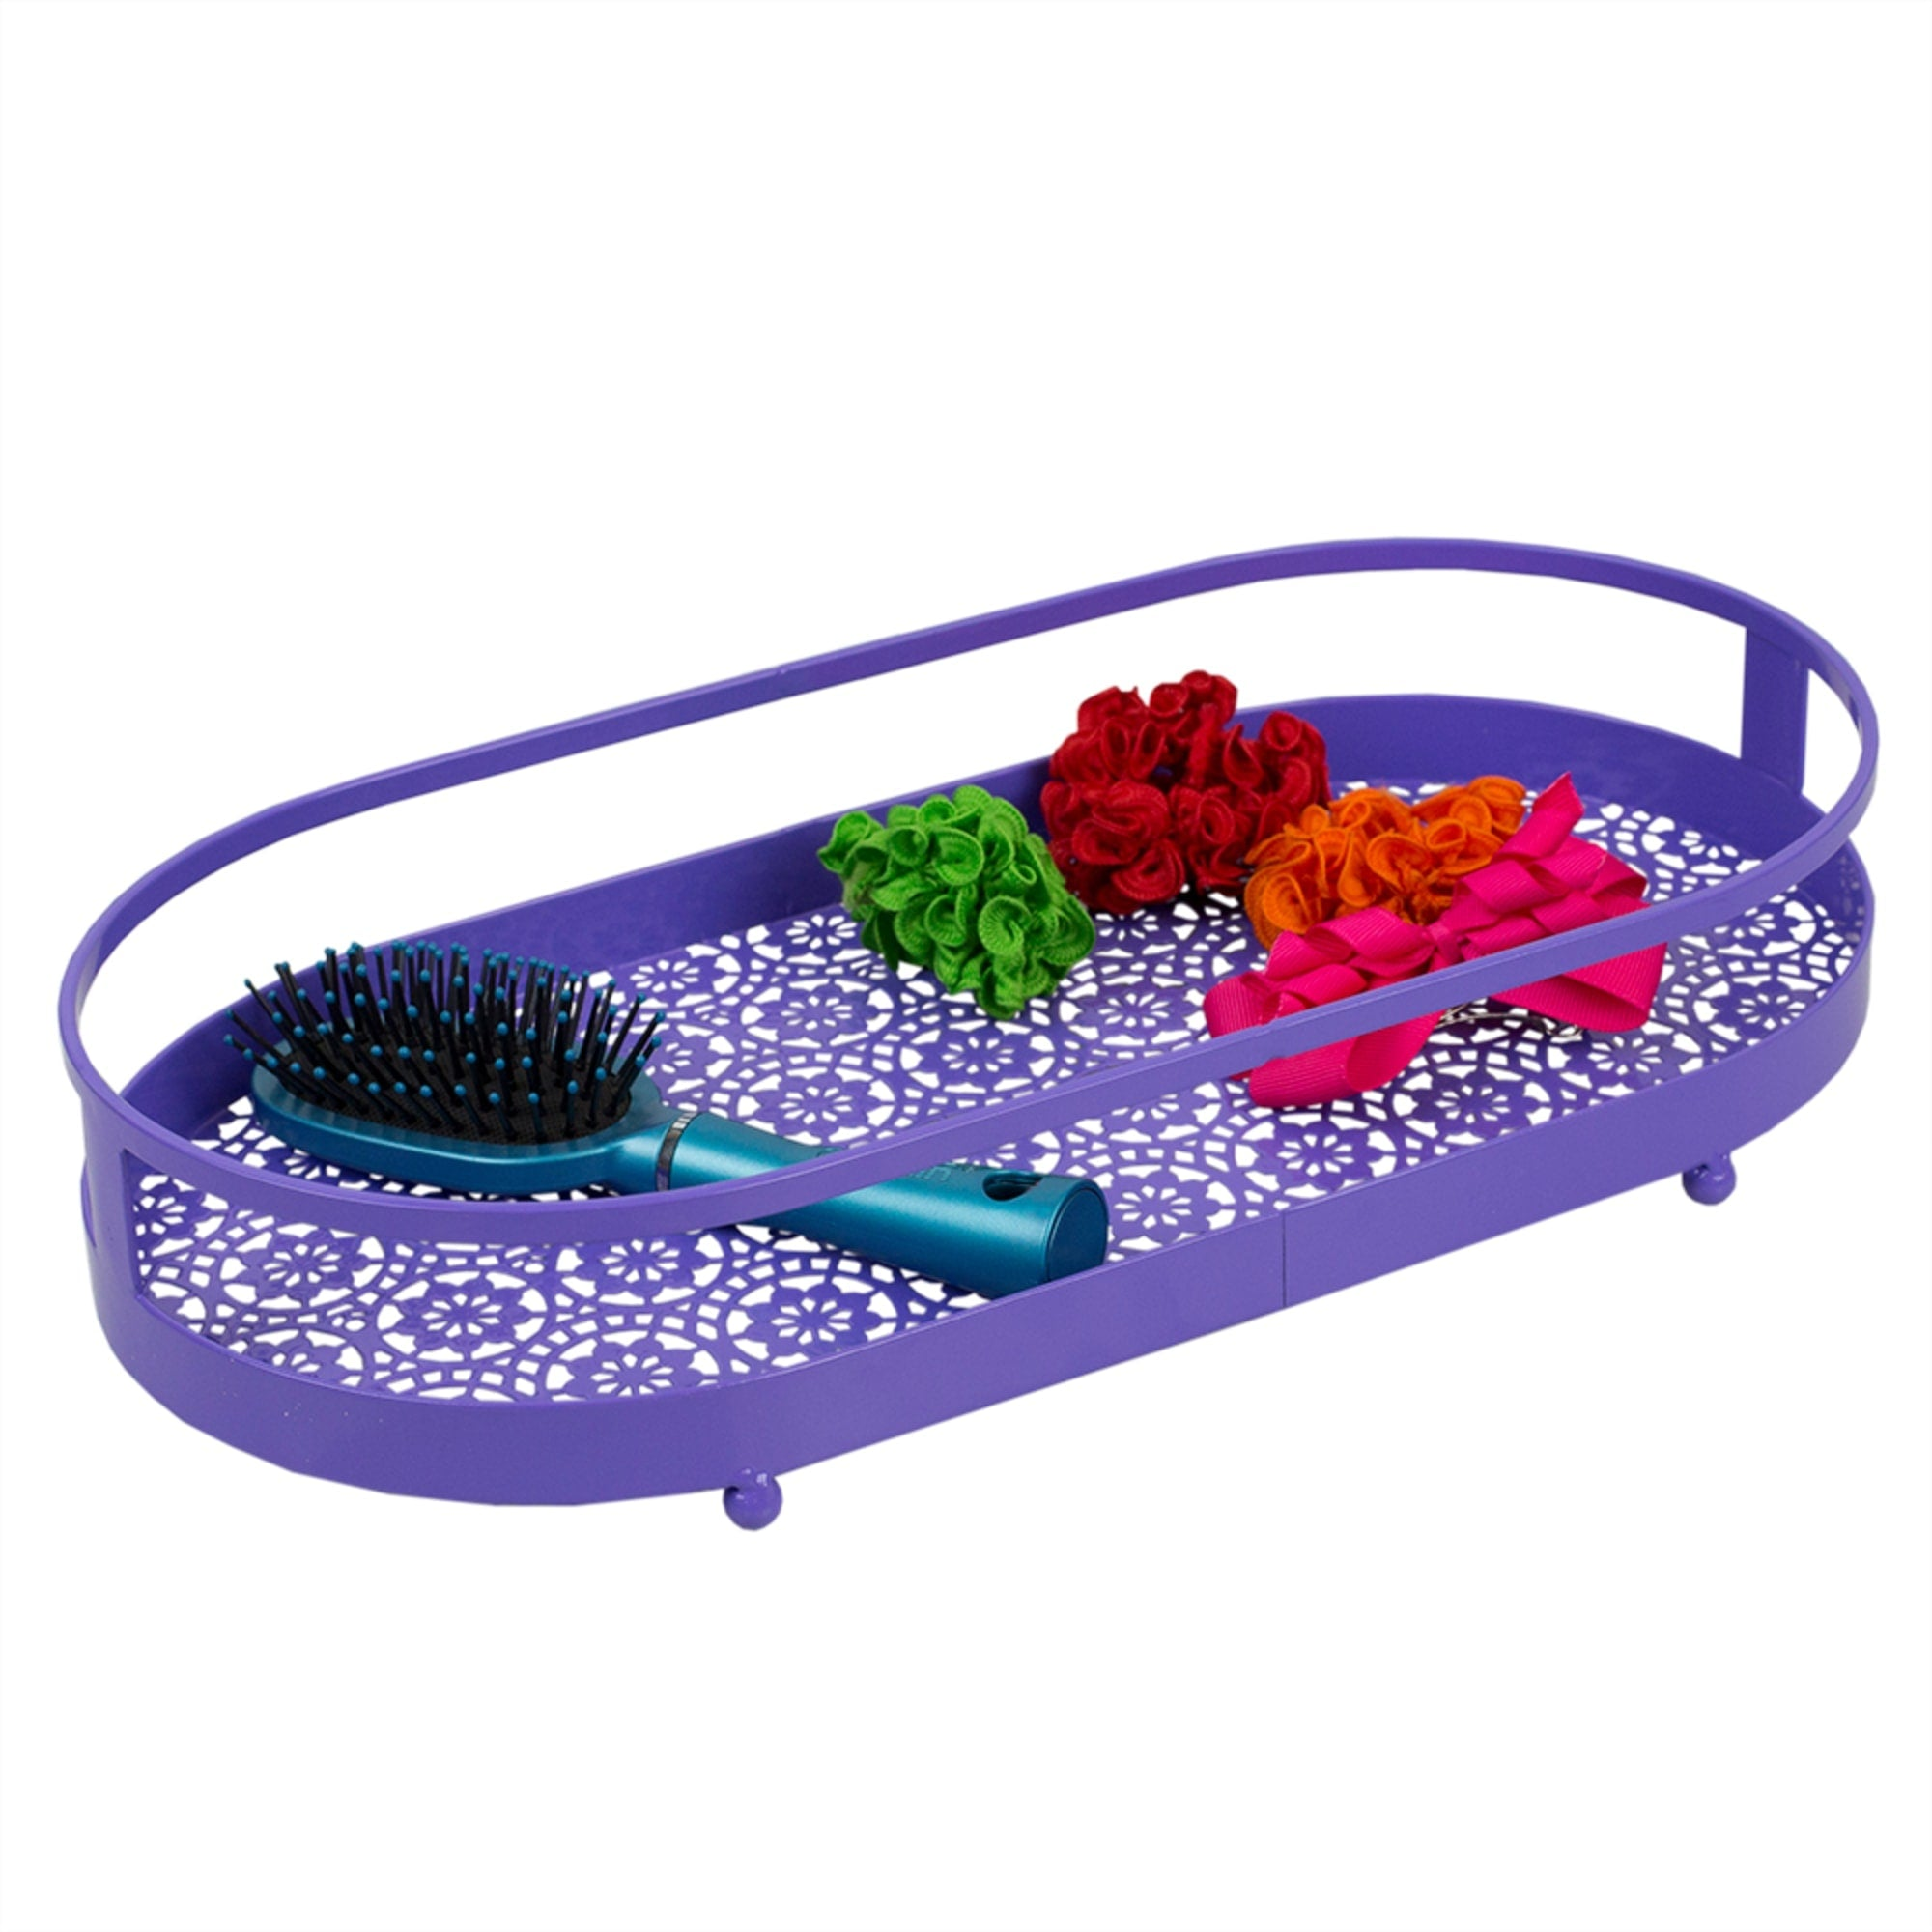 Oval Lace Decorative  Plastic Vanity Tray with Rounded Feet, Purple